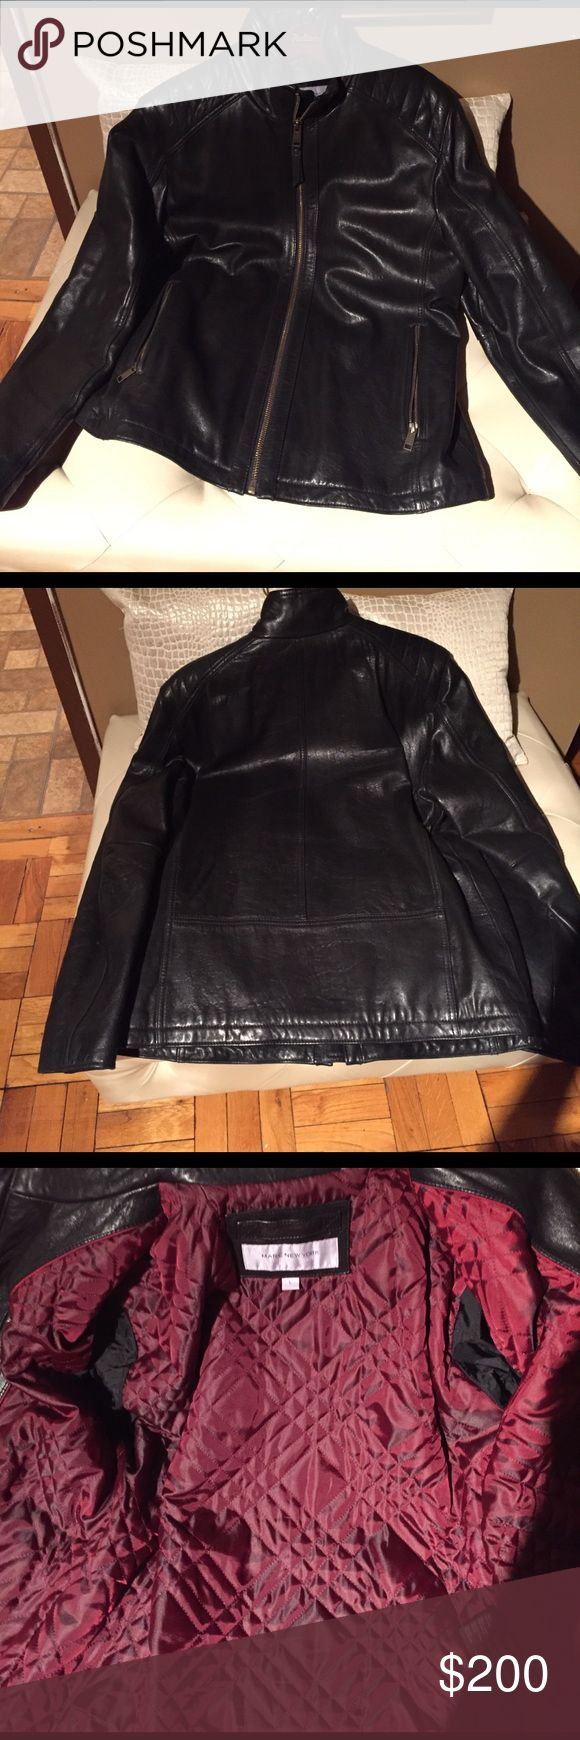 Andrew Marc Men's leather jacket Wore twice and in excellent condition. Size large Andrew Marc leather jacket. Offers welcomed Andrew Marc Jackets & Coats